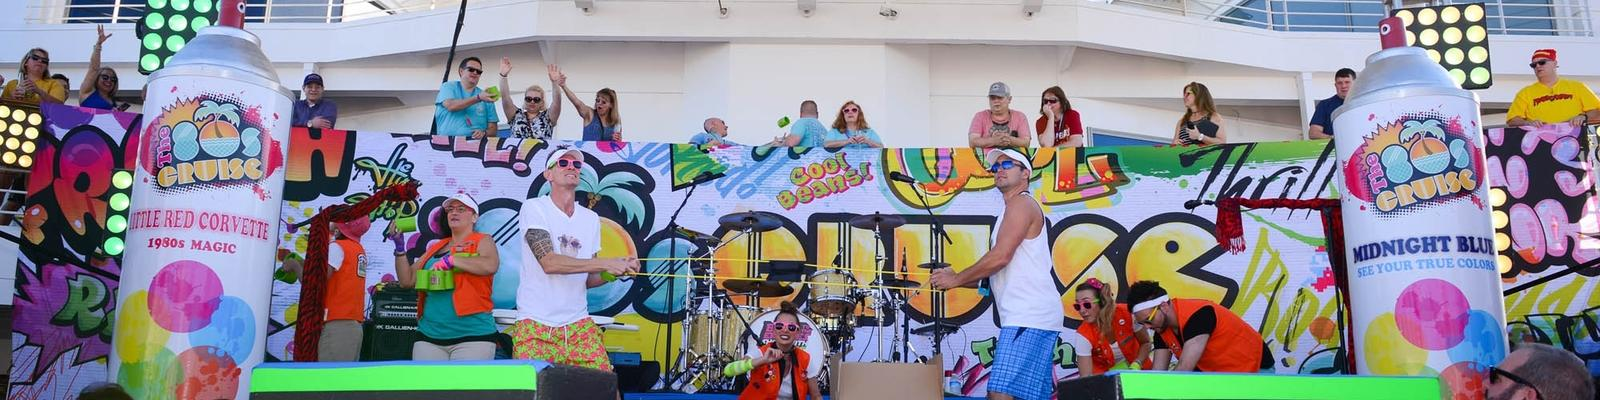 The Pool Stage on the 2017 80's Cruise (Photo: The 80's Cruise)